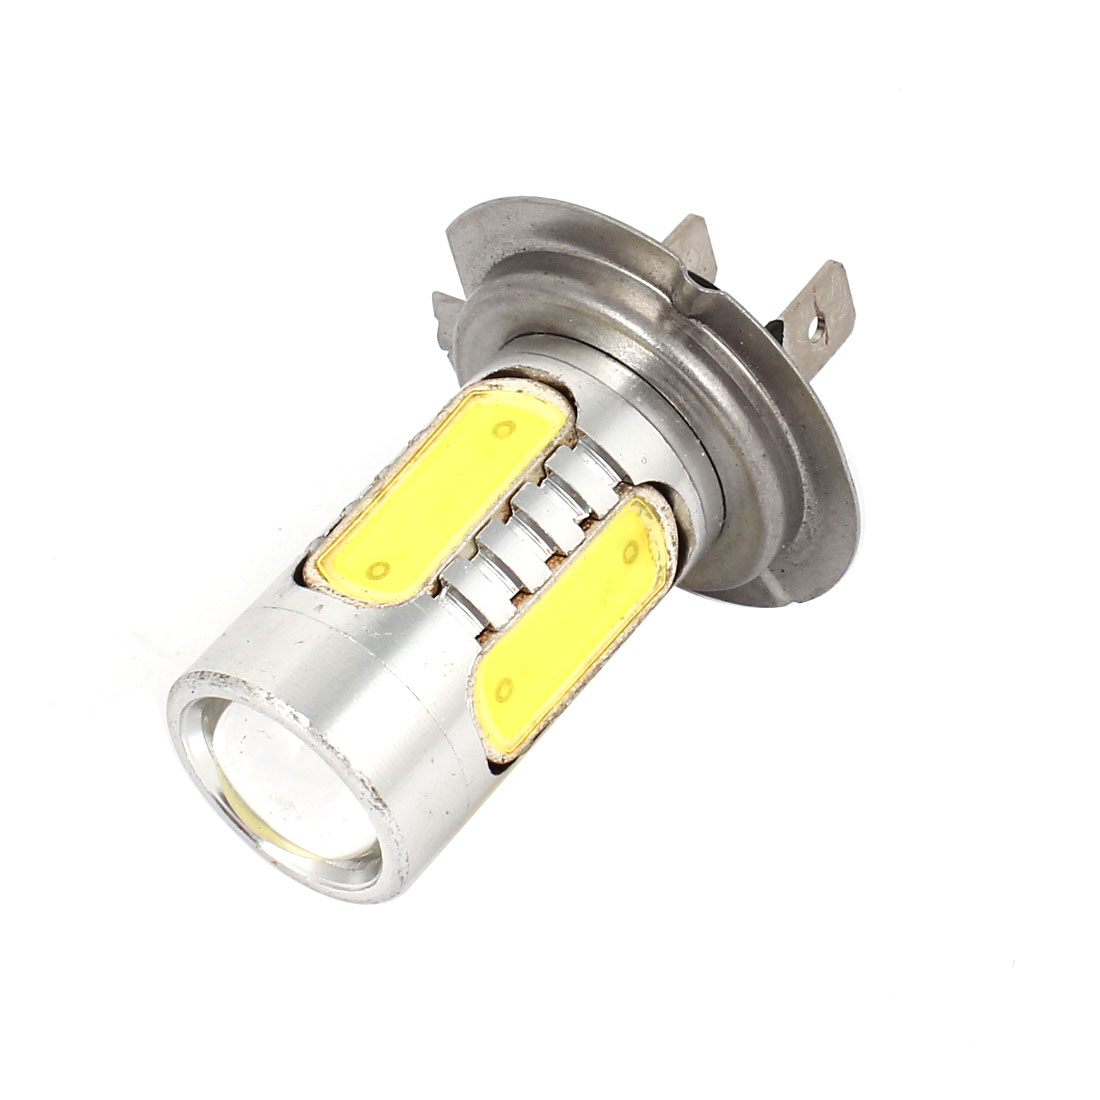 H7 7.5W 5 SMD Lens LED White Fog Light Lamp for Auto Car